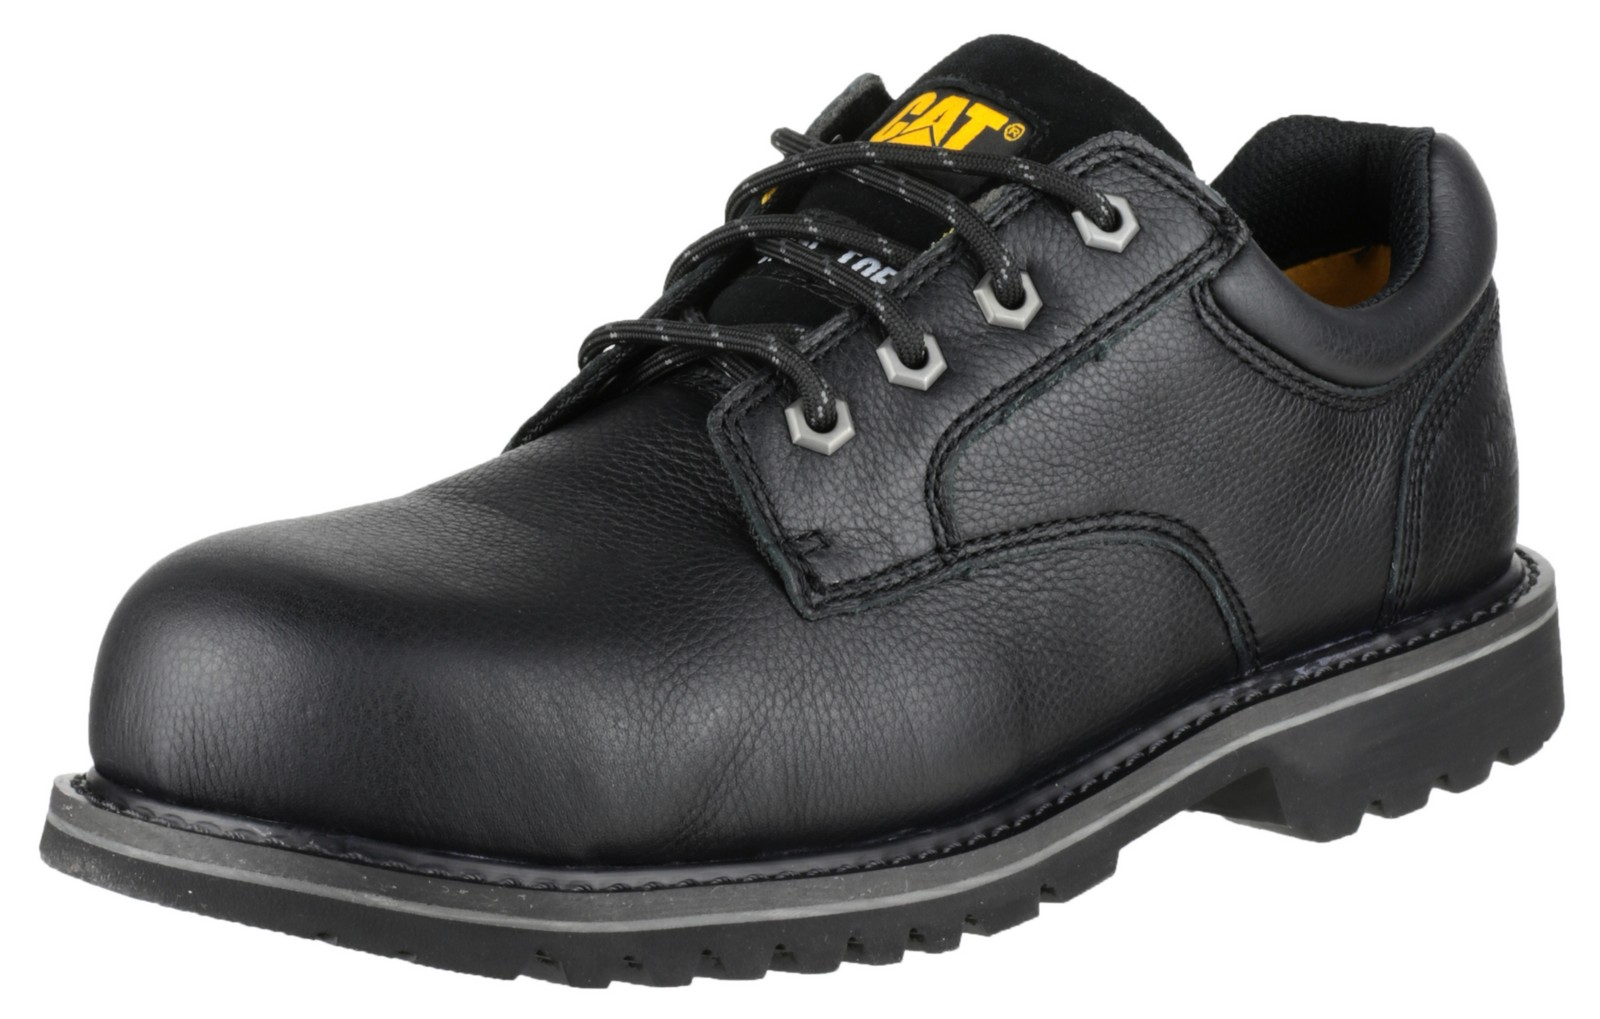 Caterpillar CAT Electric Lo Black Safety Work Shoes   EBay